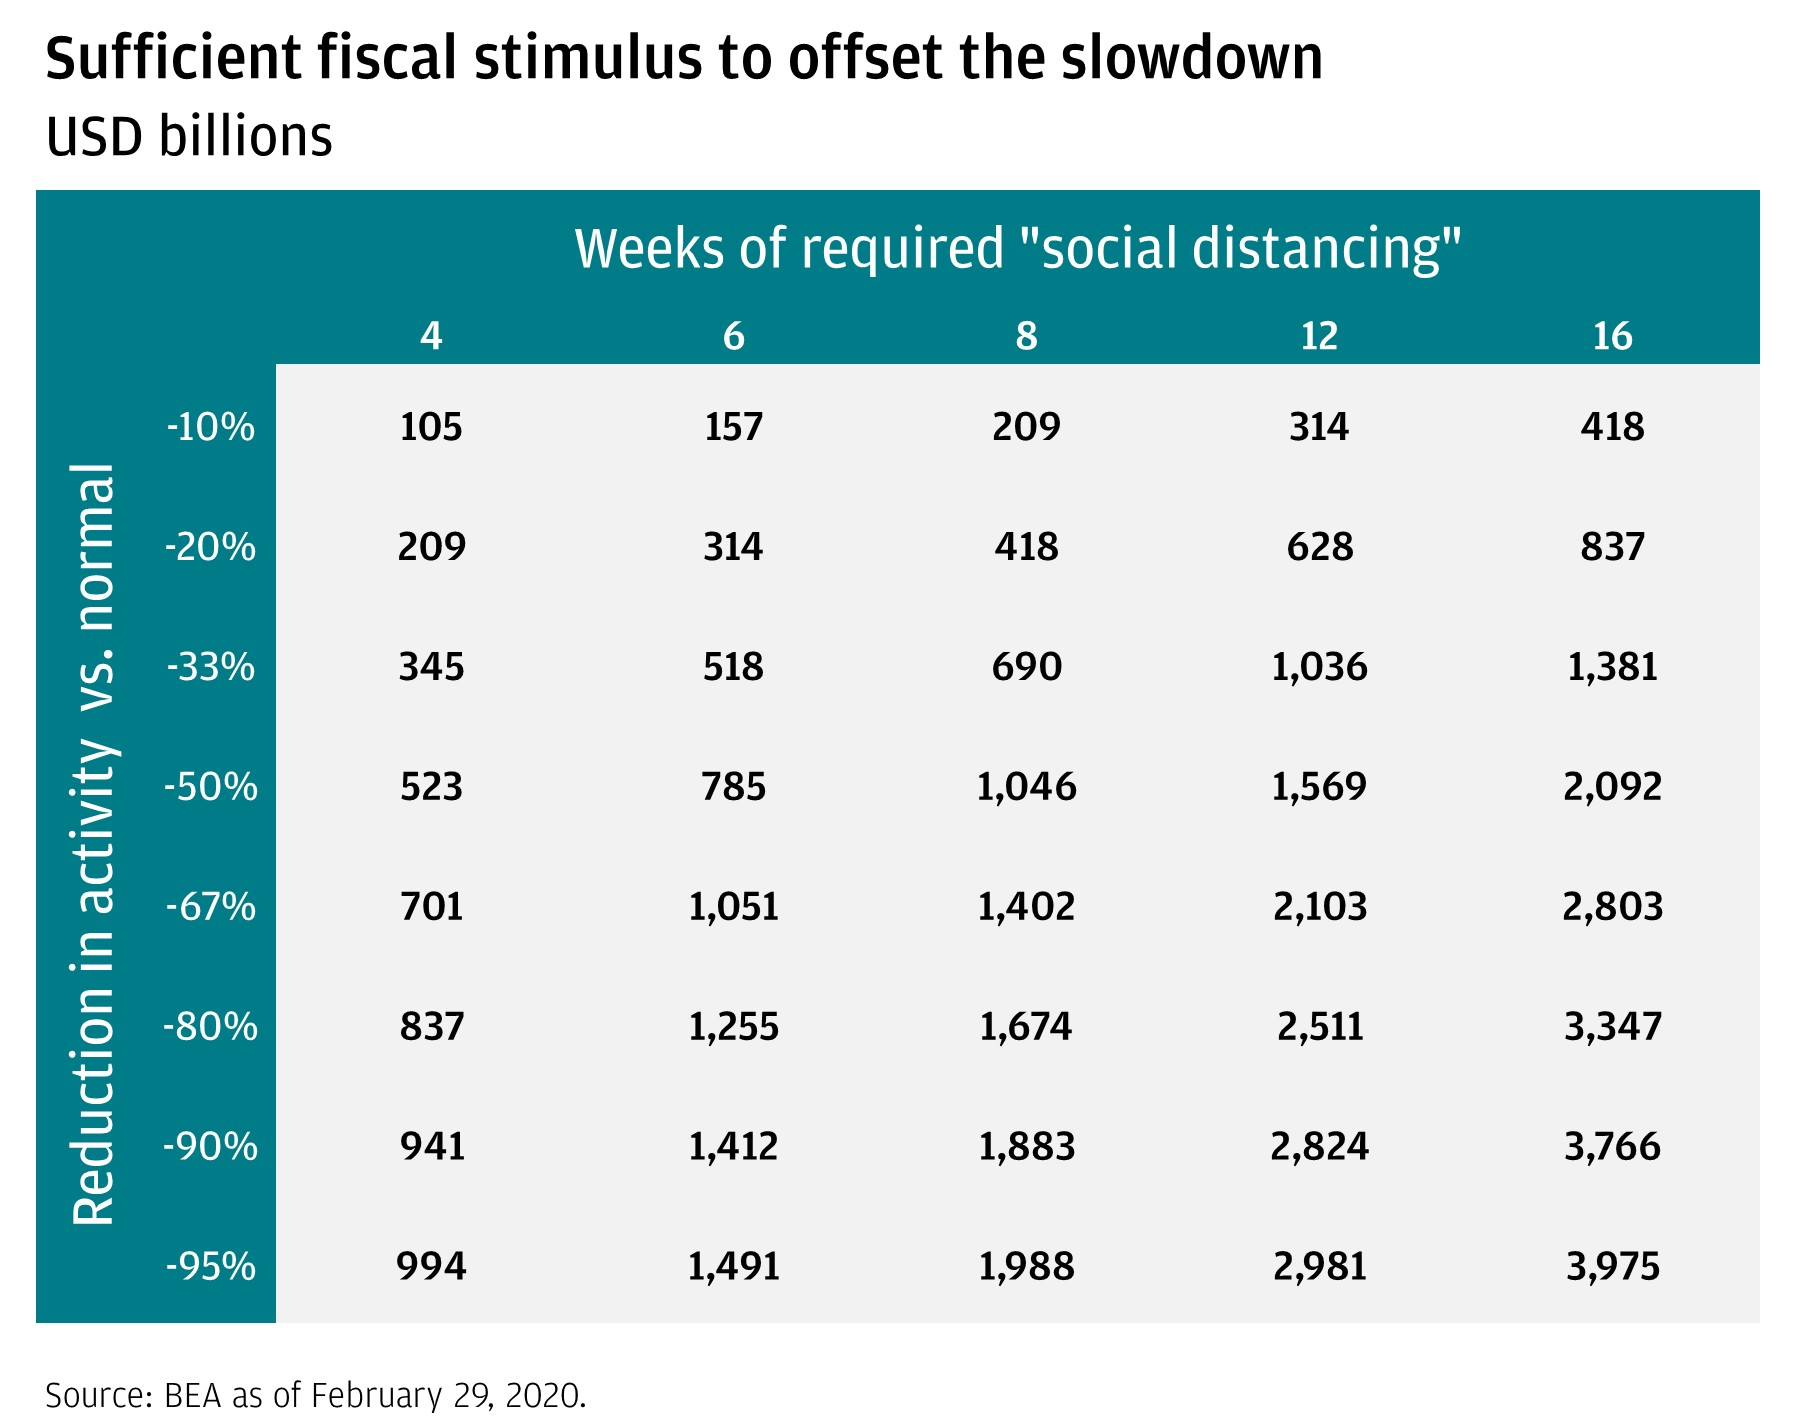 Table shows potential amount of fiscal stimulus the economy will need to offset a range of economic slowdowns based on a scale of weeks of required social distancing (4 to 16) and reduction in activity (-10% to -95%).